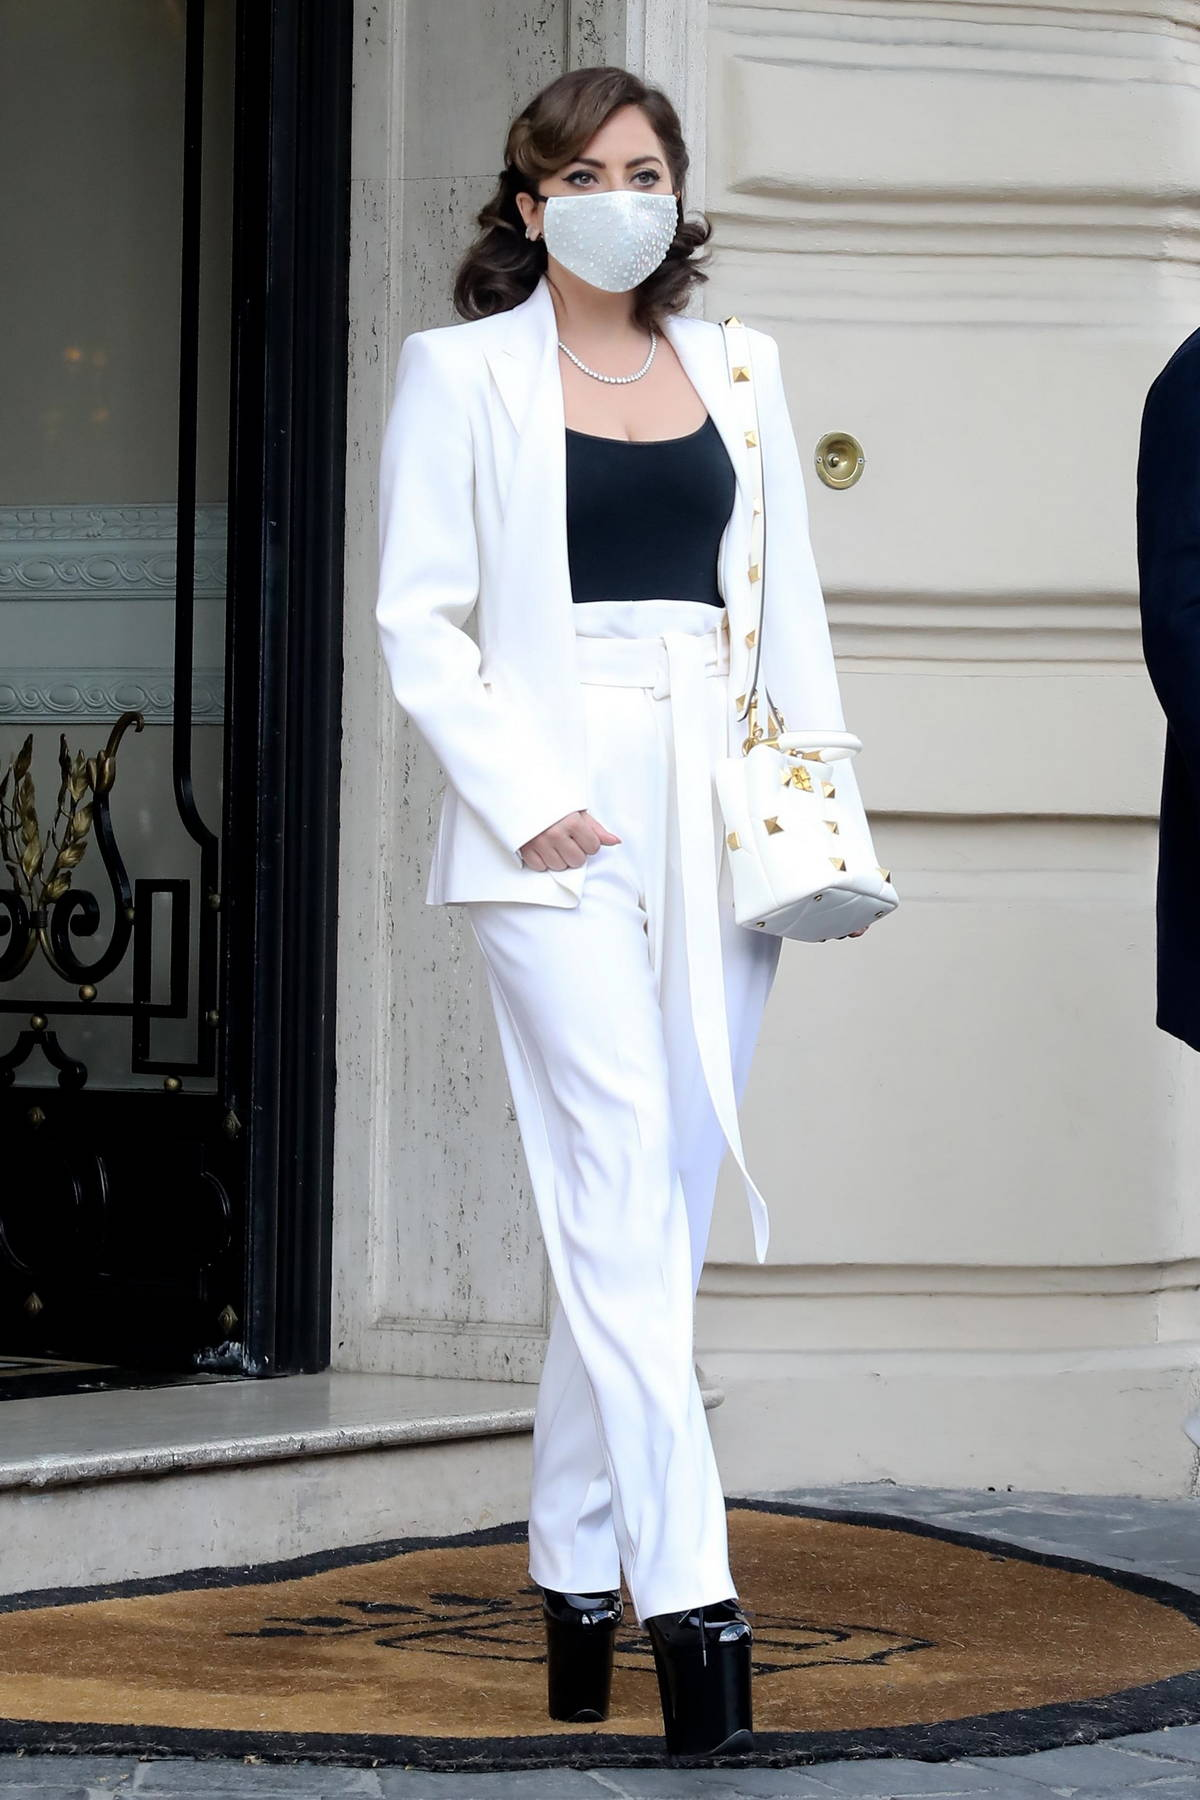 Lady Gaga looks stylish in a white pantsuit as she leaves her hotel in Rome, Italy